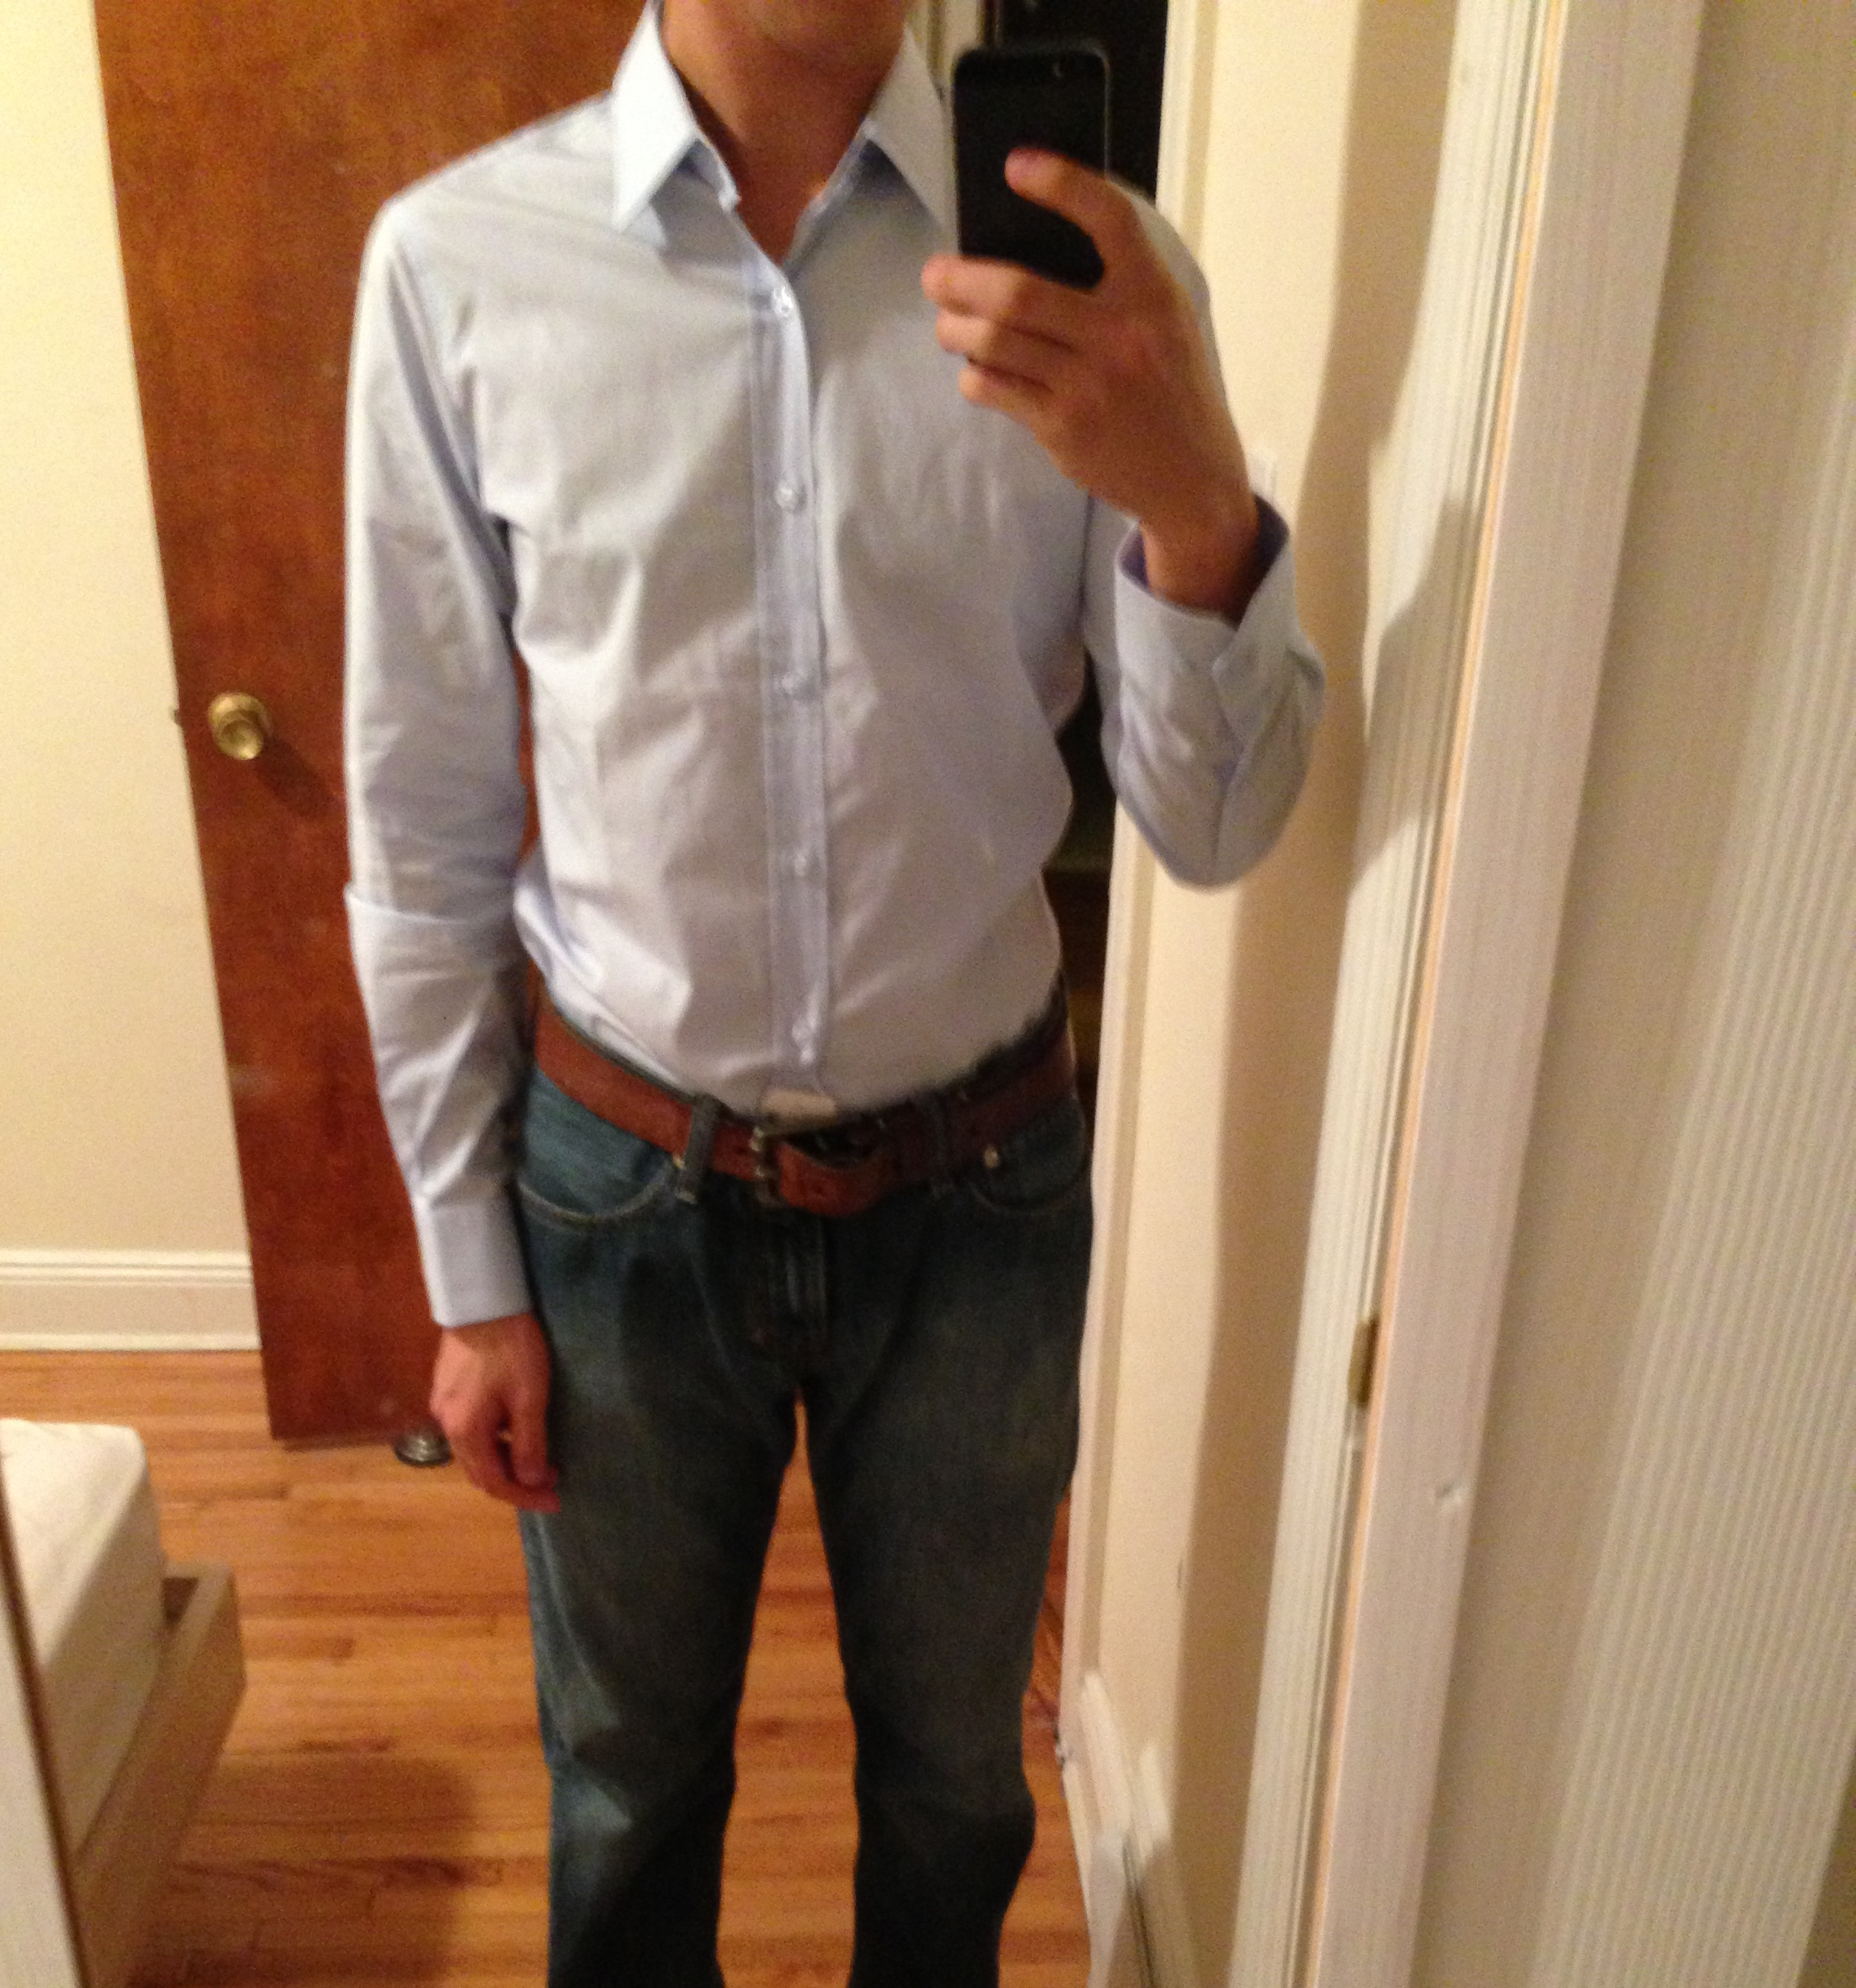 looking for advice on dress shirt fit styleforum